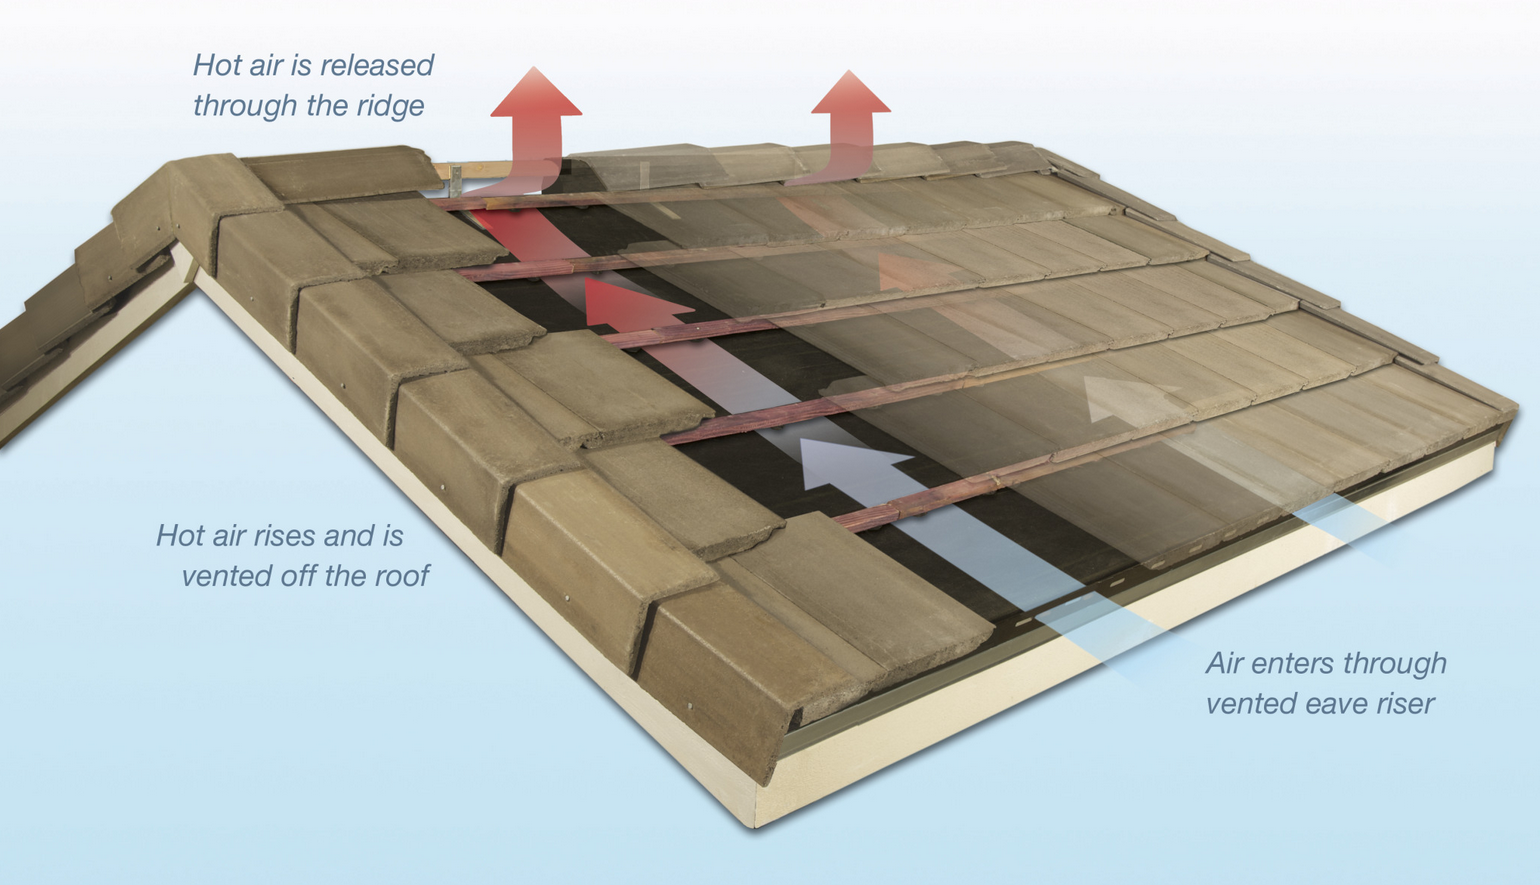 Tile roofs have an air space between installed roof tiles and the roof sheathing. This space reduces heat transfer and allows heat buildup to dissipate from the sheathing and roofing materials.